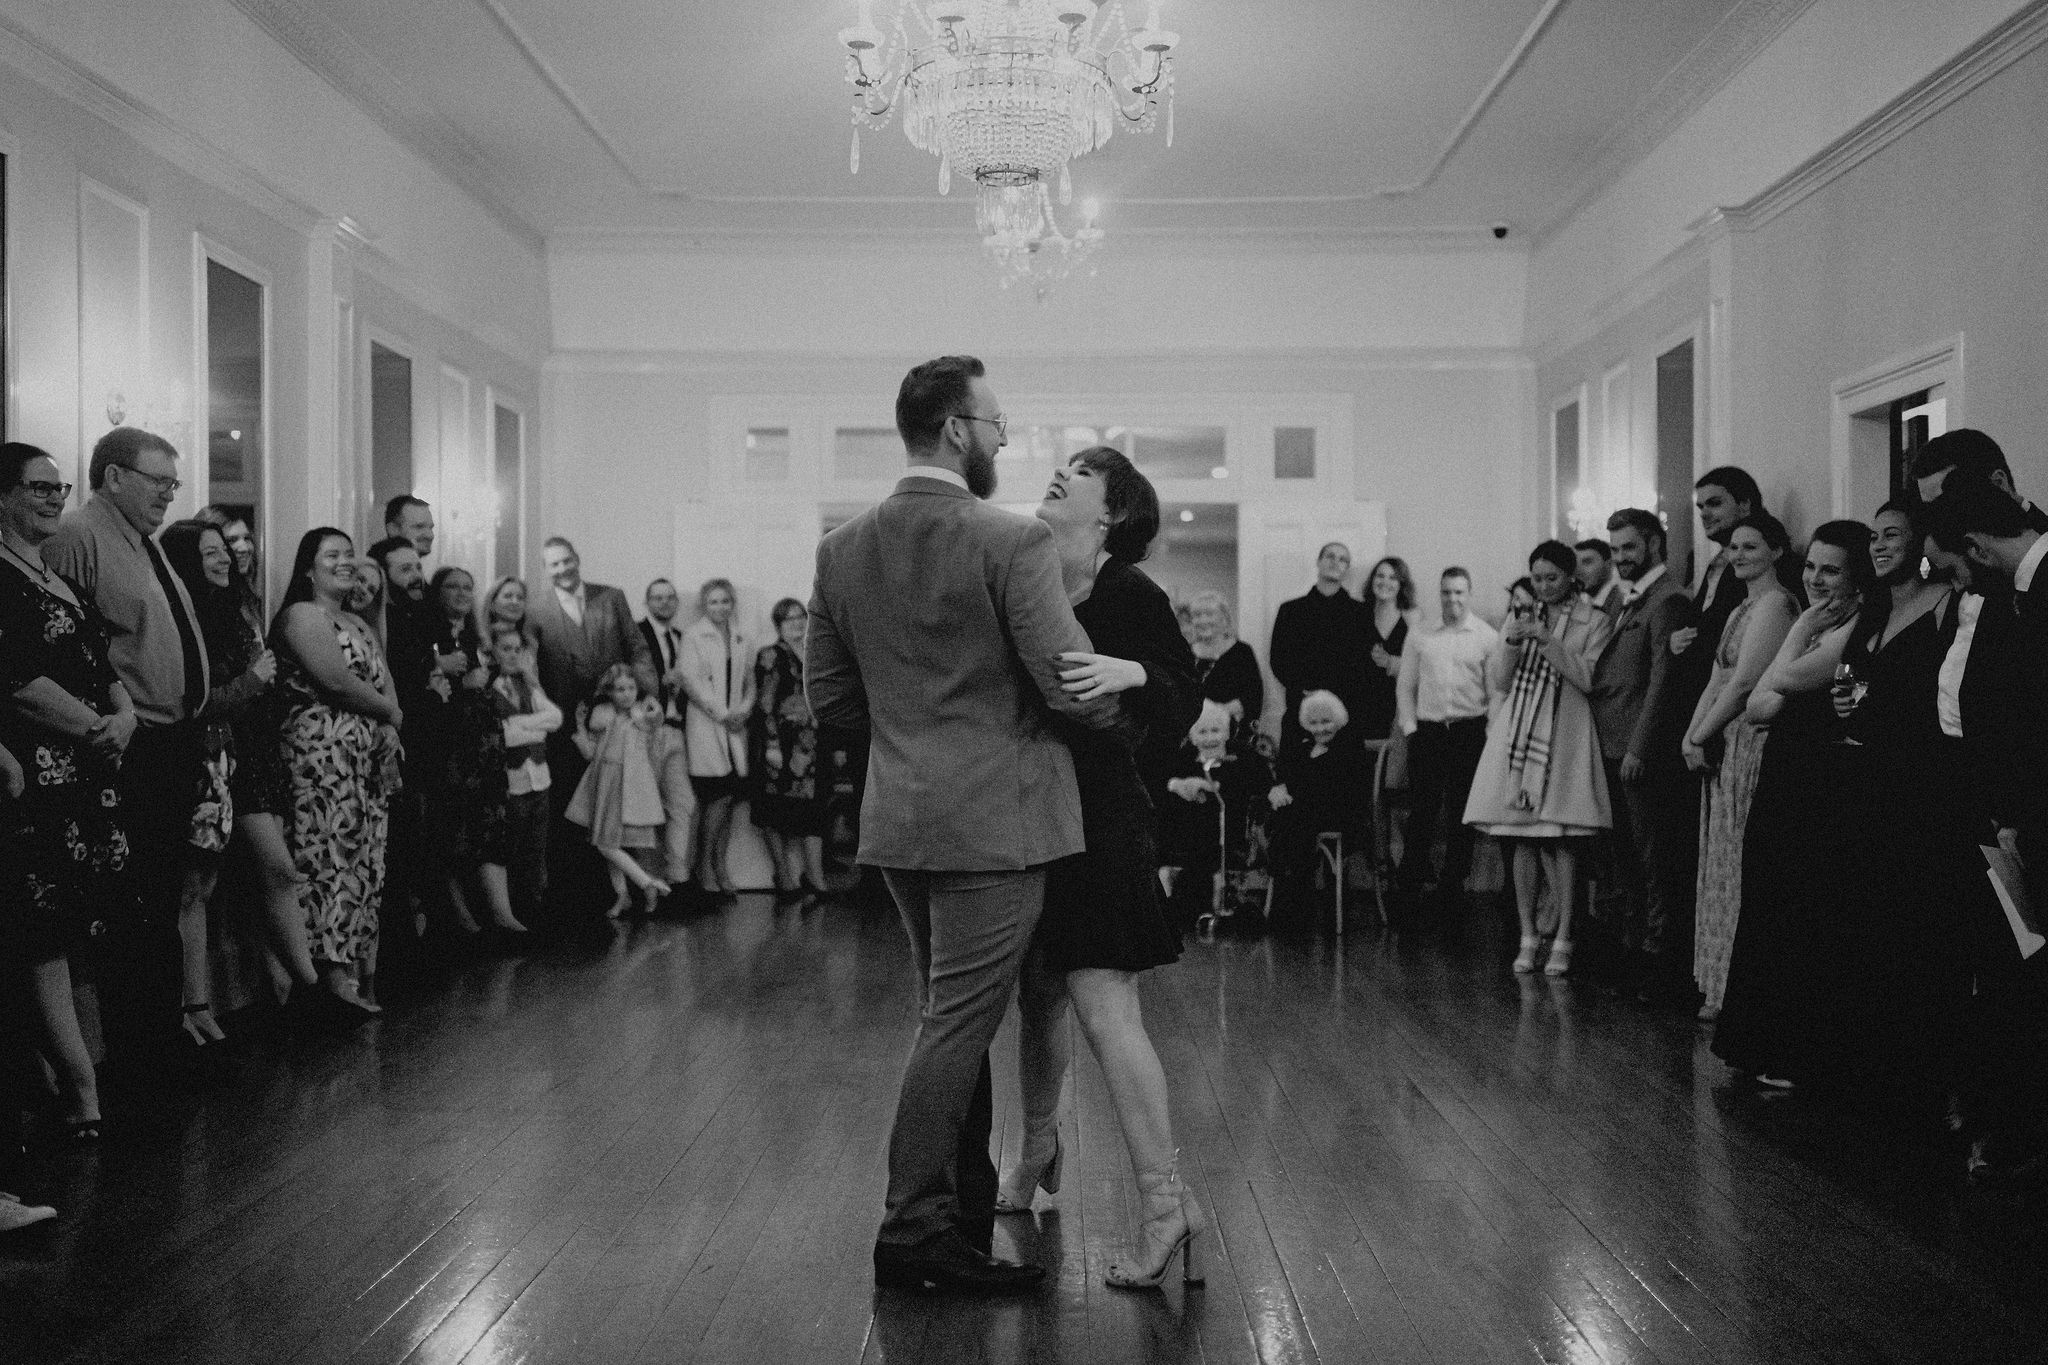 Bride and groom's first dance in the middle of a room with people looking on